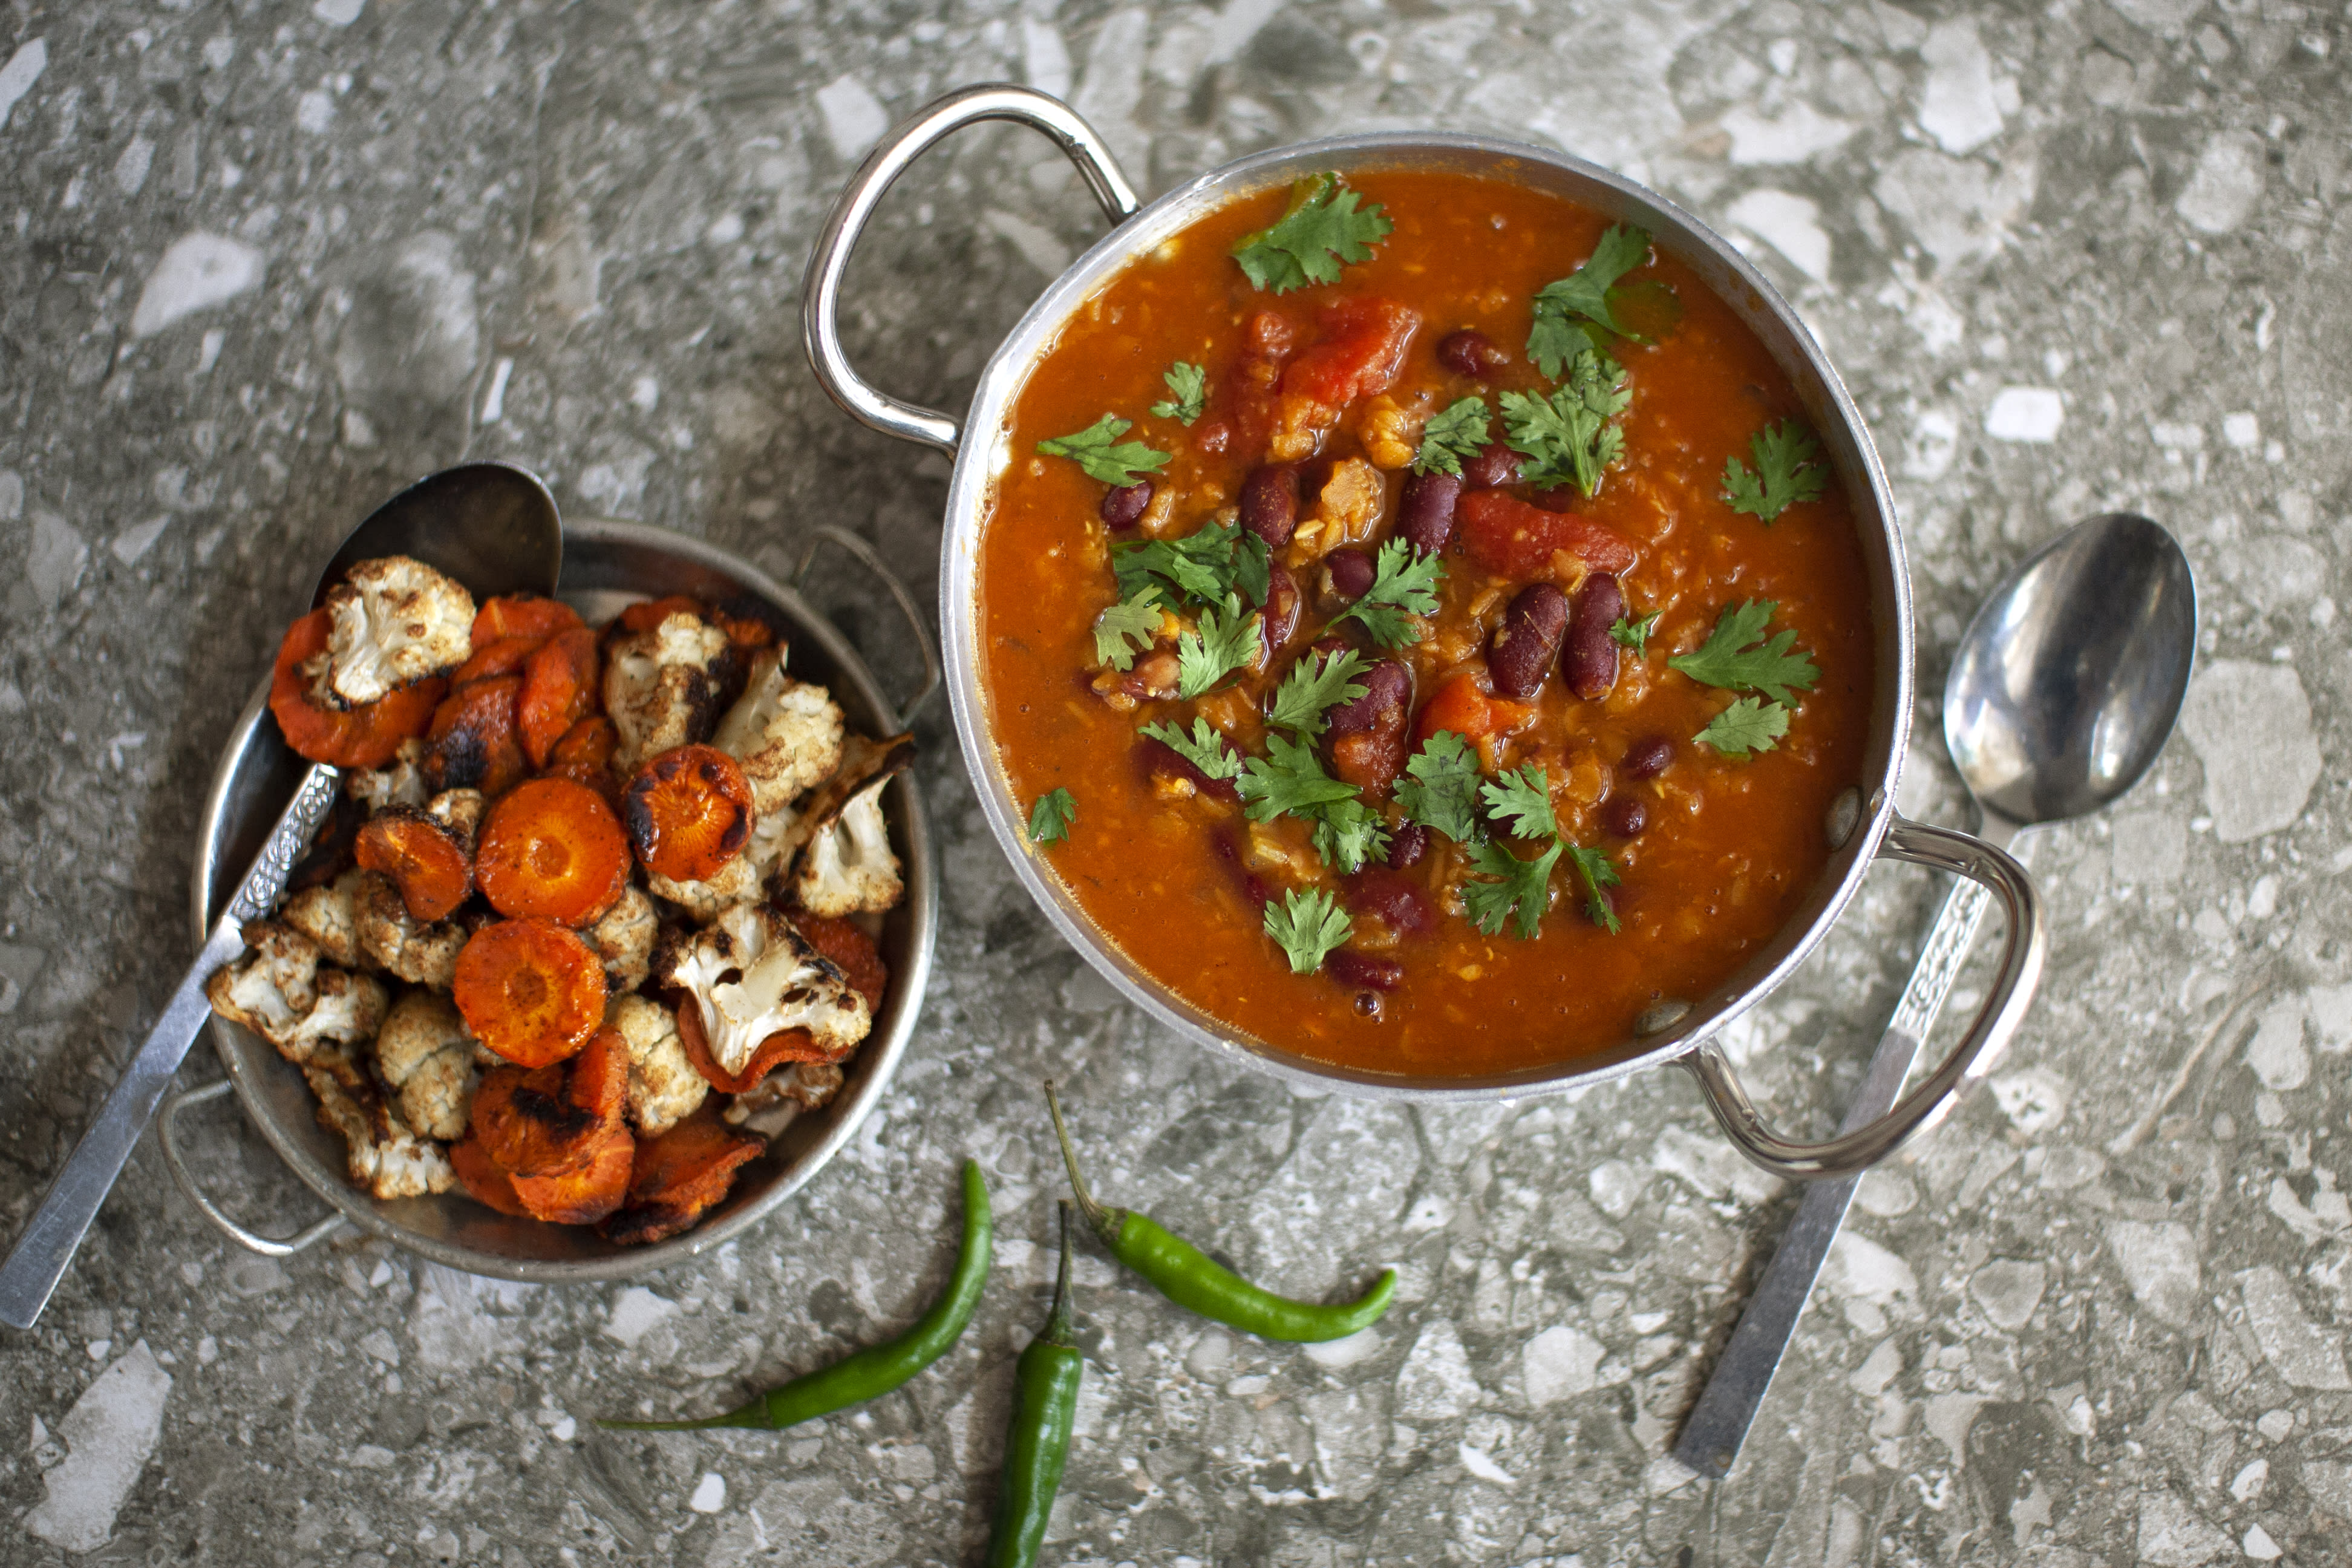 Bean and Lentil Chilli with Spicy Roasted Vegetables